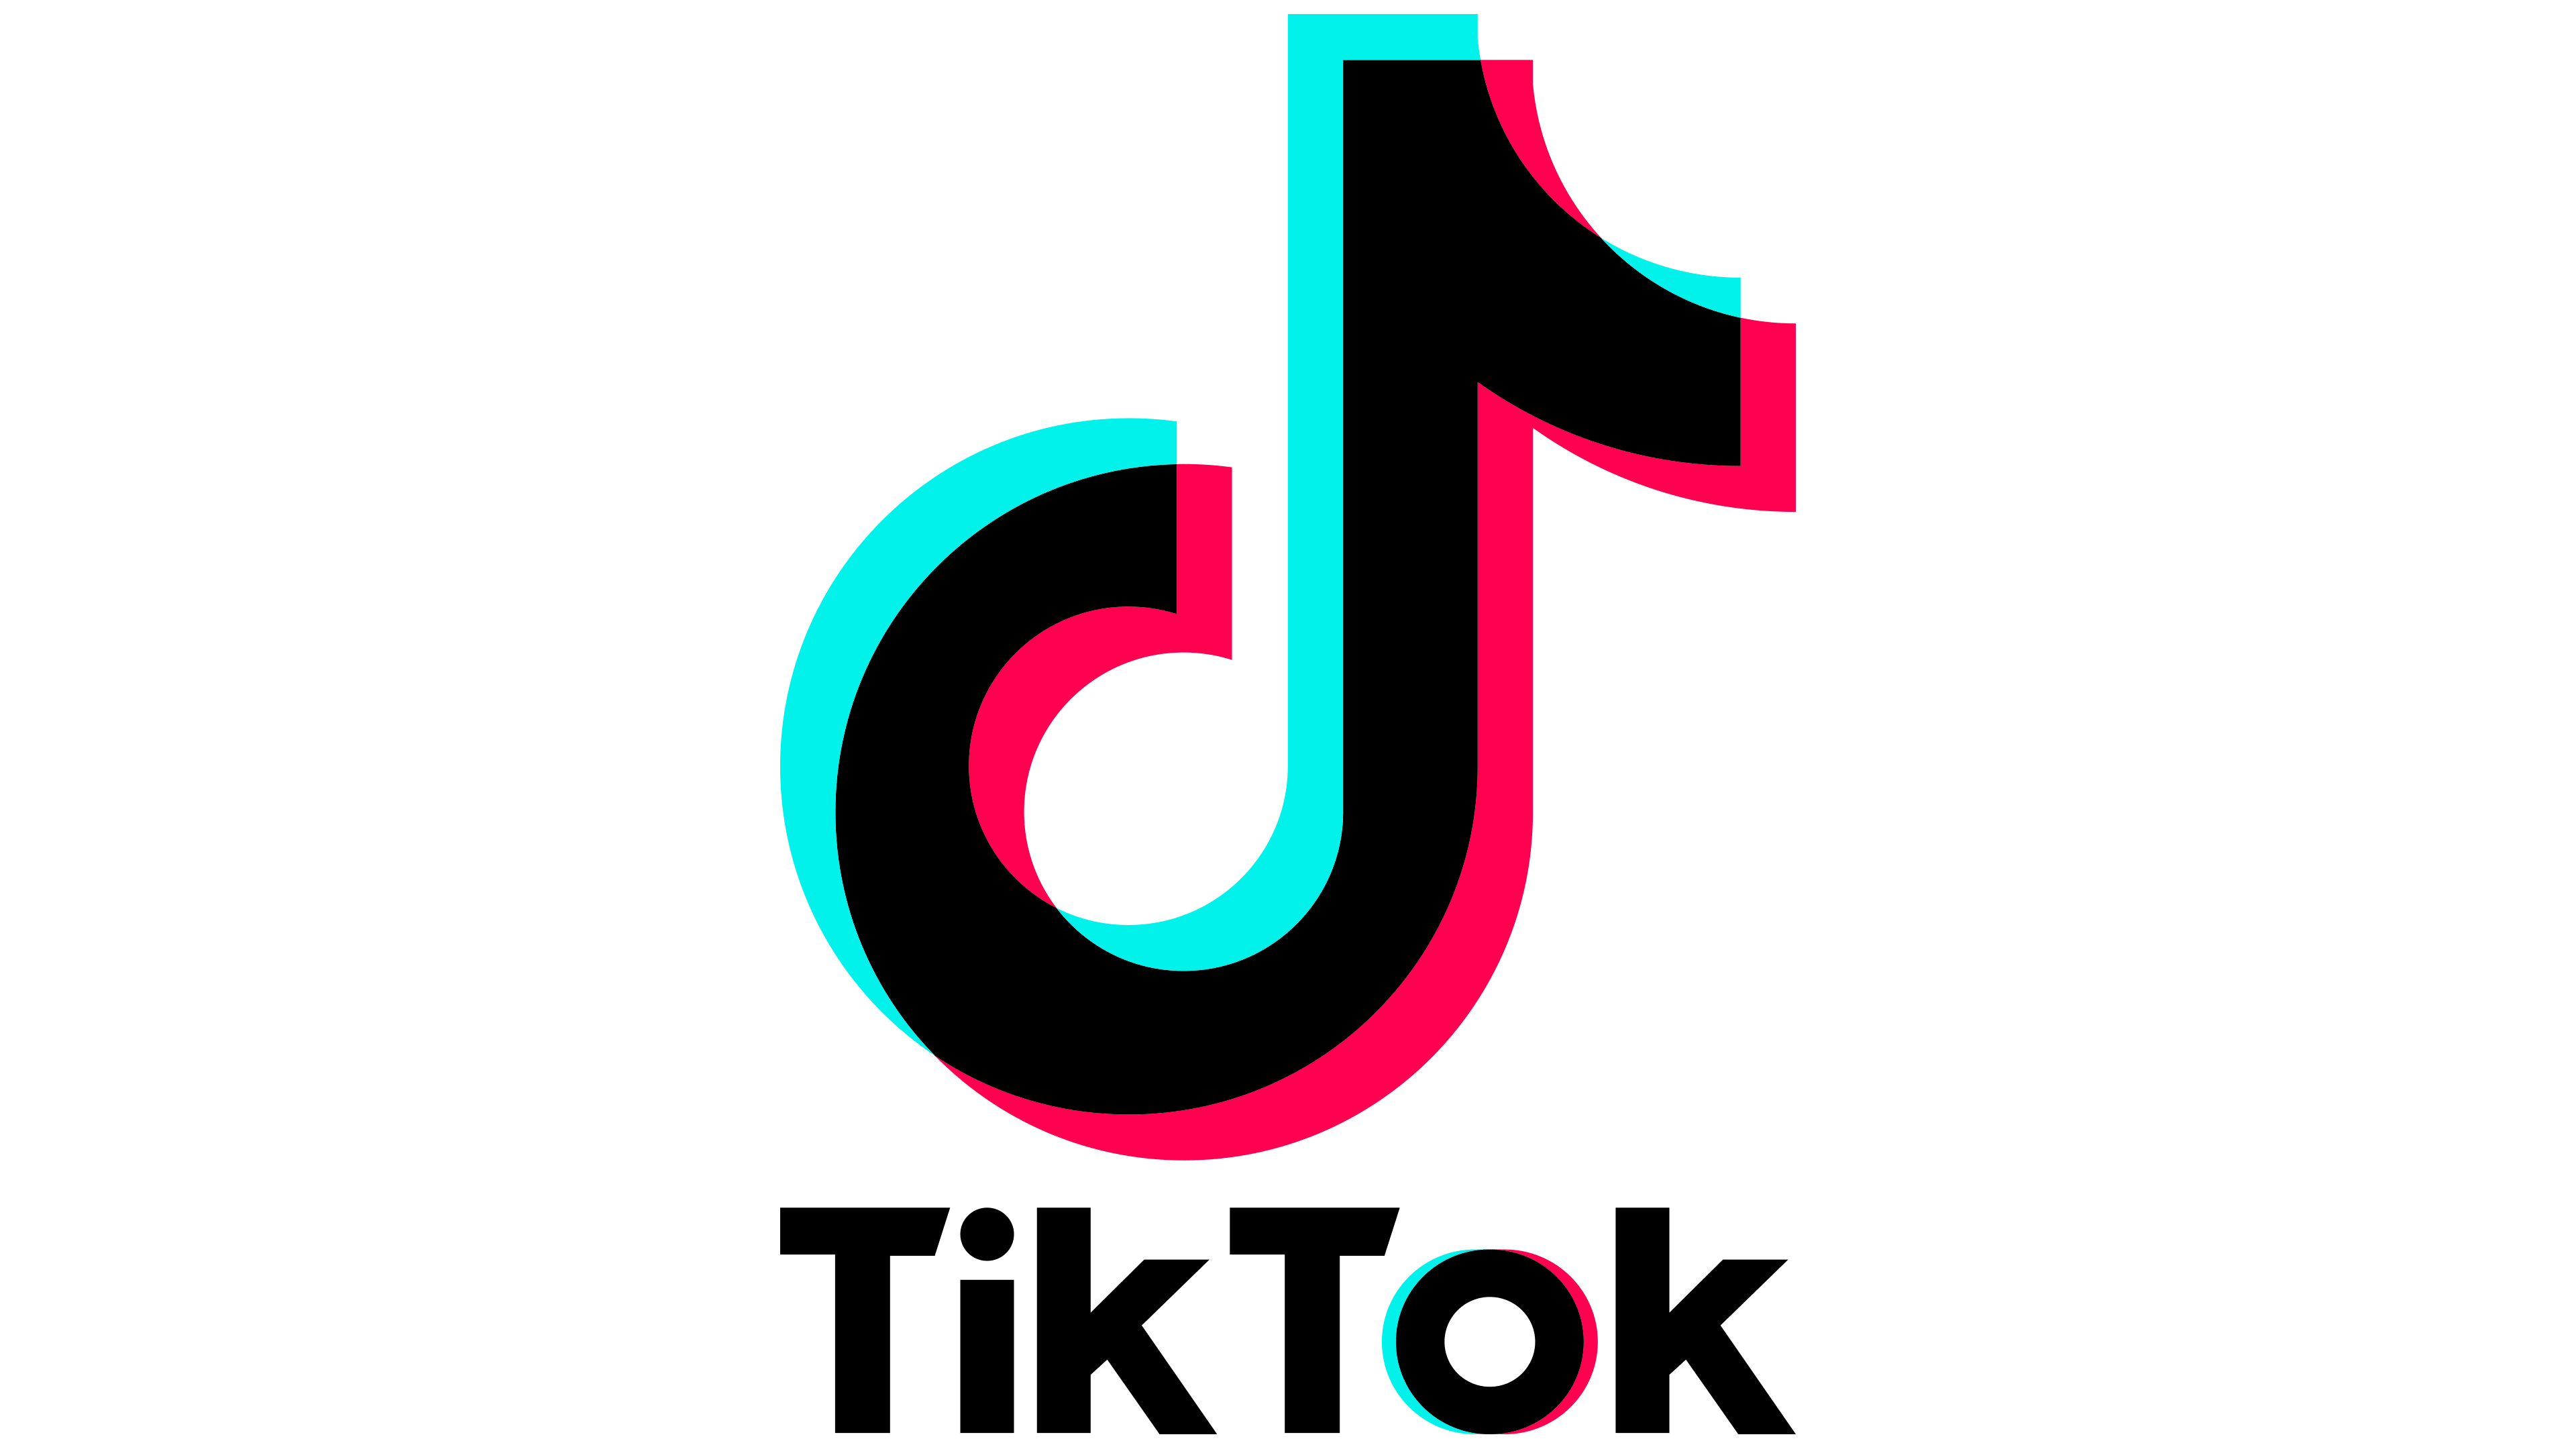 TikTok: What parents need to know about online safety - Pittsburgh Parent